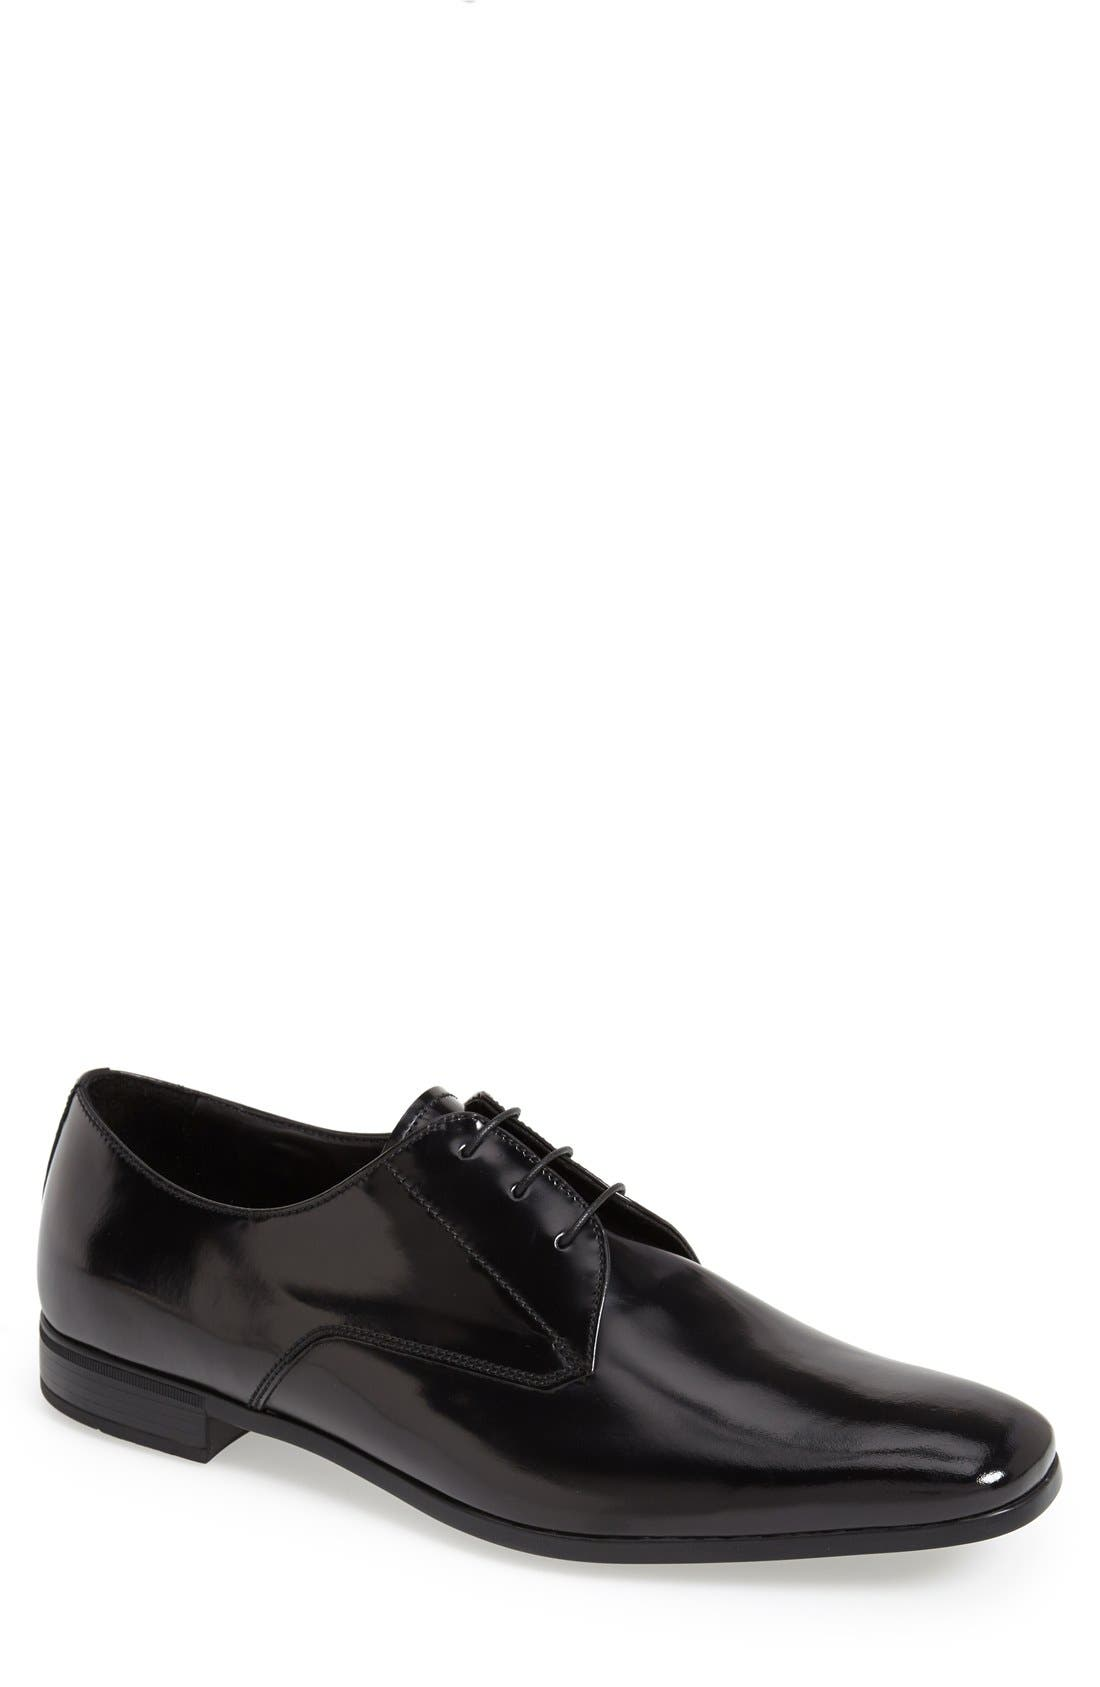 Spazzalato Plain Toe Derby,                         Main,                         color, Black